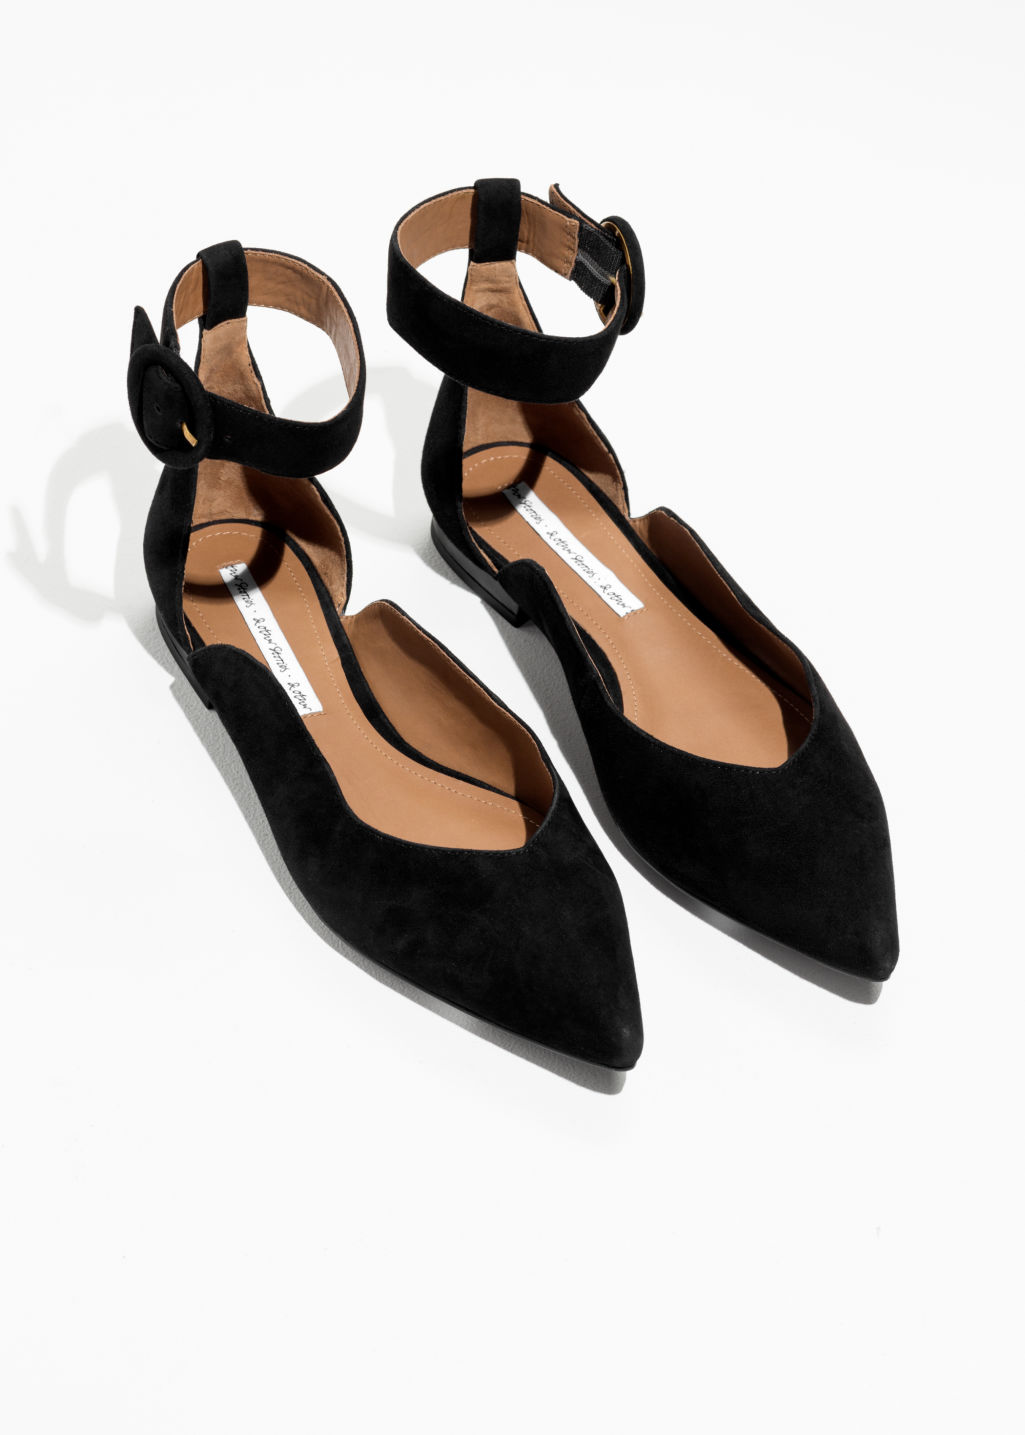 & OTHER STORIES Pointed Ankle Strap Flats omFSOlBks